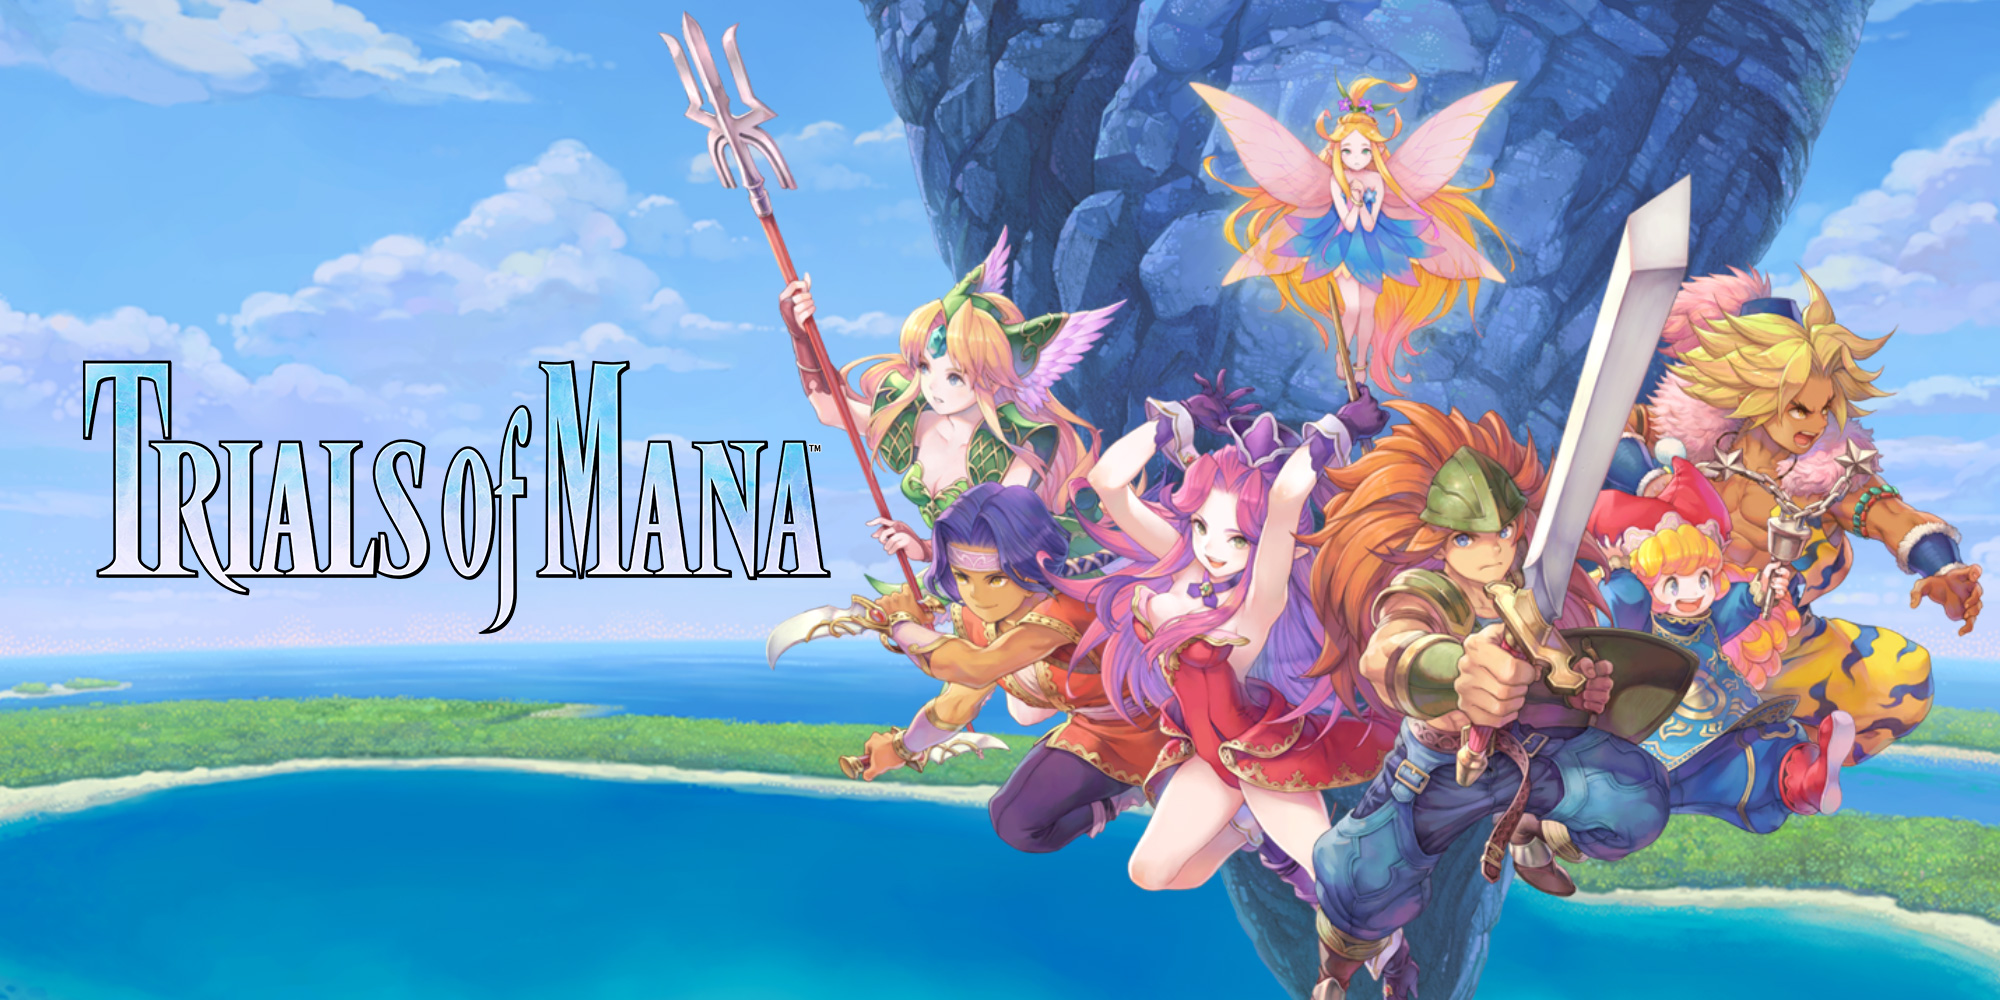 Descubrid la magia de TRIALS of MANA con Nintendo Treehouse: Live. ¡El juego estará disponible para Nintendo Switch en 2020!